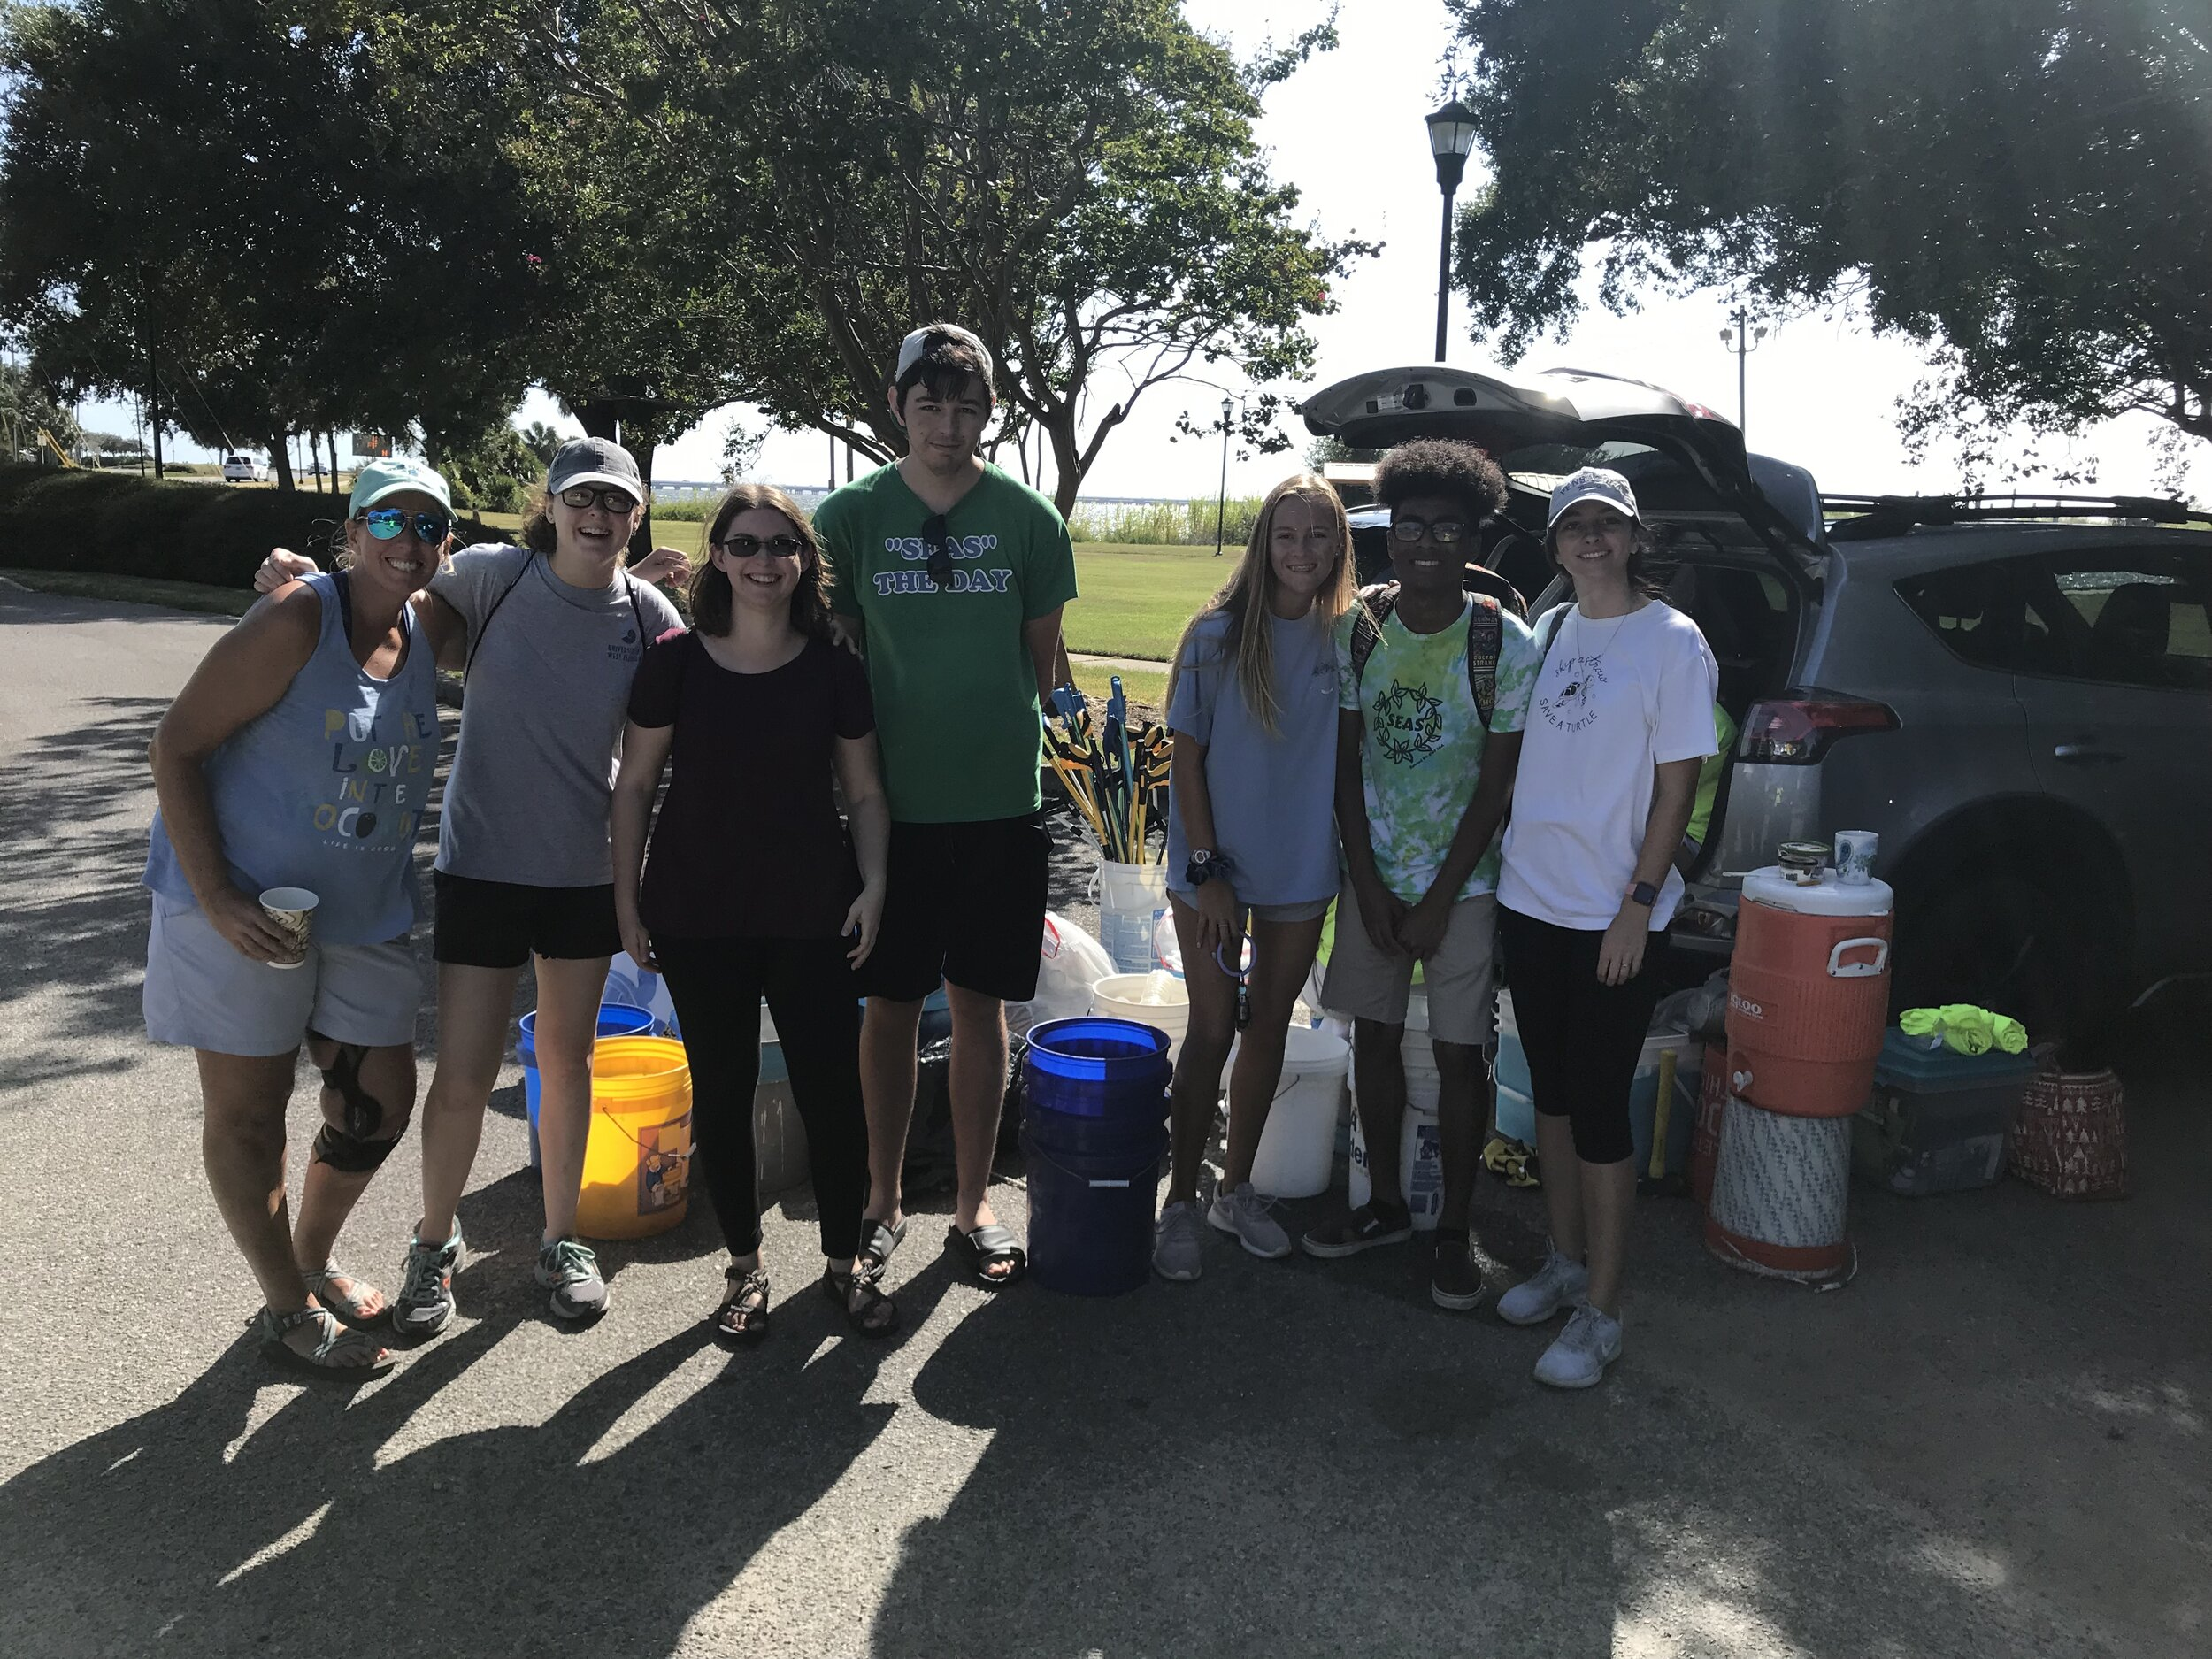 """- Members of UWF's Student Environmental Action Society helped to pick up 75 lbs of trash at Bartram park. A further 550 lbs was collected at Wayside Park/Graffiti Bridge by 83 volunteersEach week has unique items - last week was 20+ Pensacola News Journal newspaper plastic wrappers along Scenic Hwy. This week it was 12 """"airplane"""" size bottles of alcohol along a short stretch of Bayfront Pkwy!"""